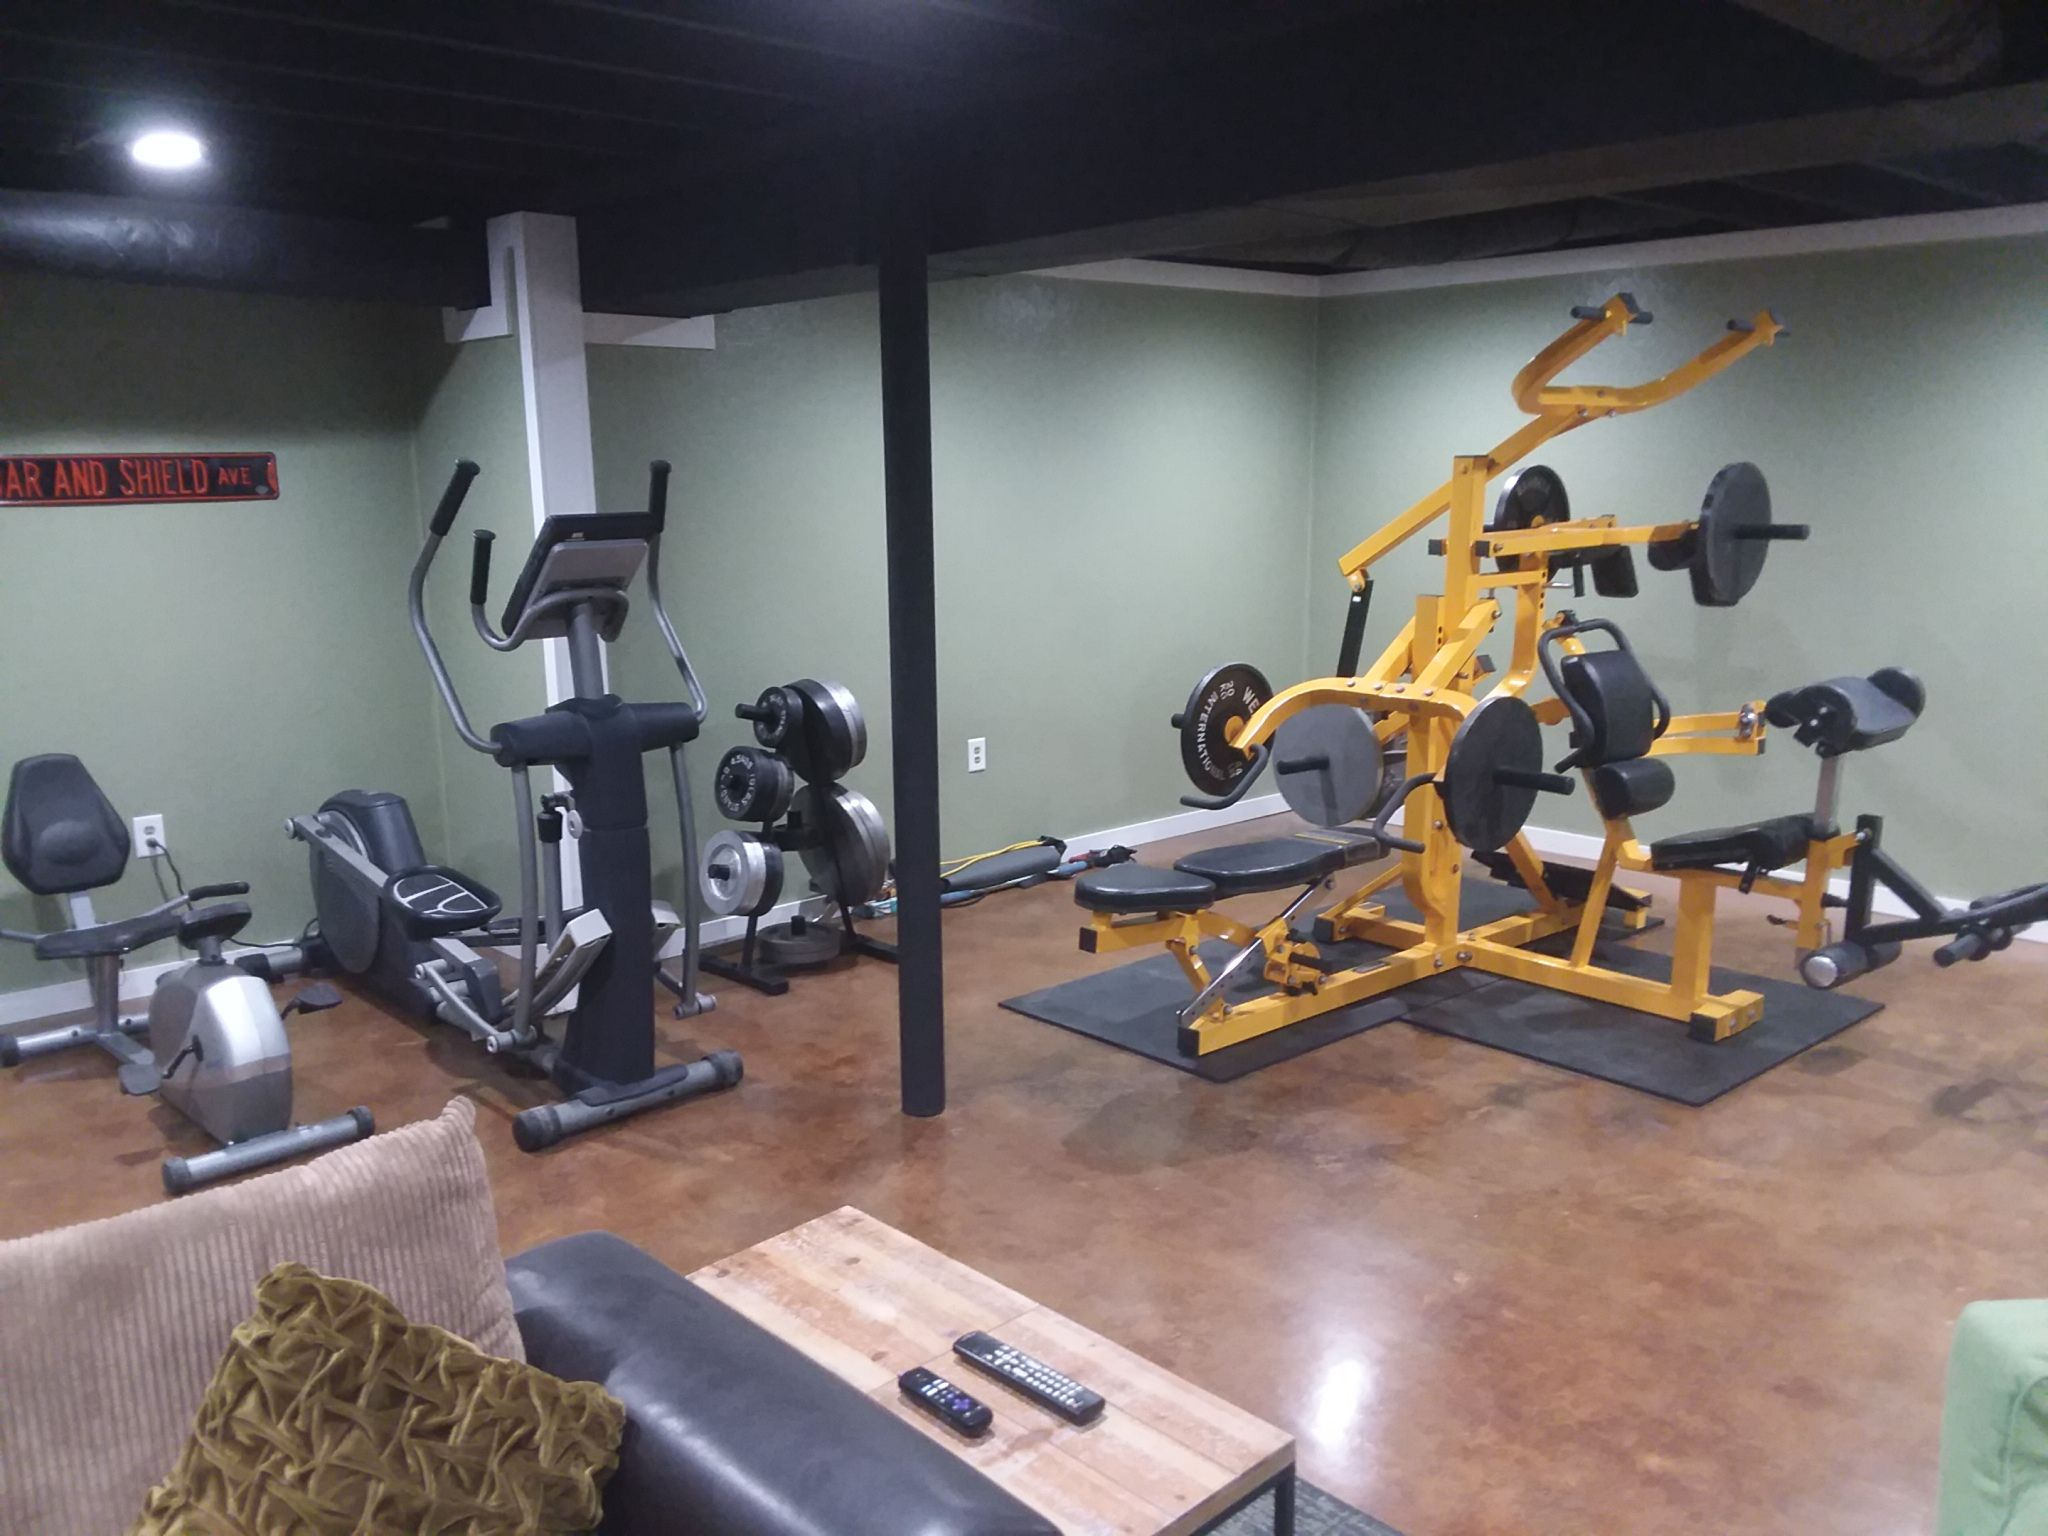 Stained concrete floors, flat black ceiling, Home Gym